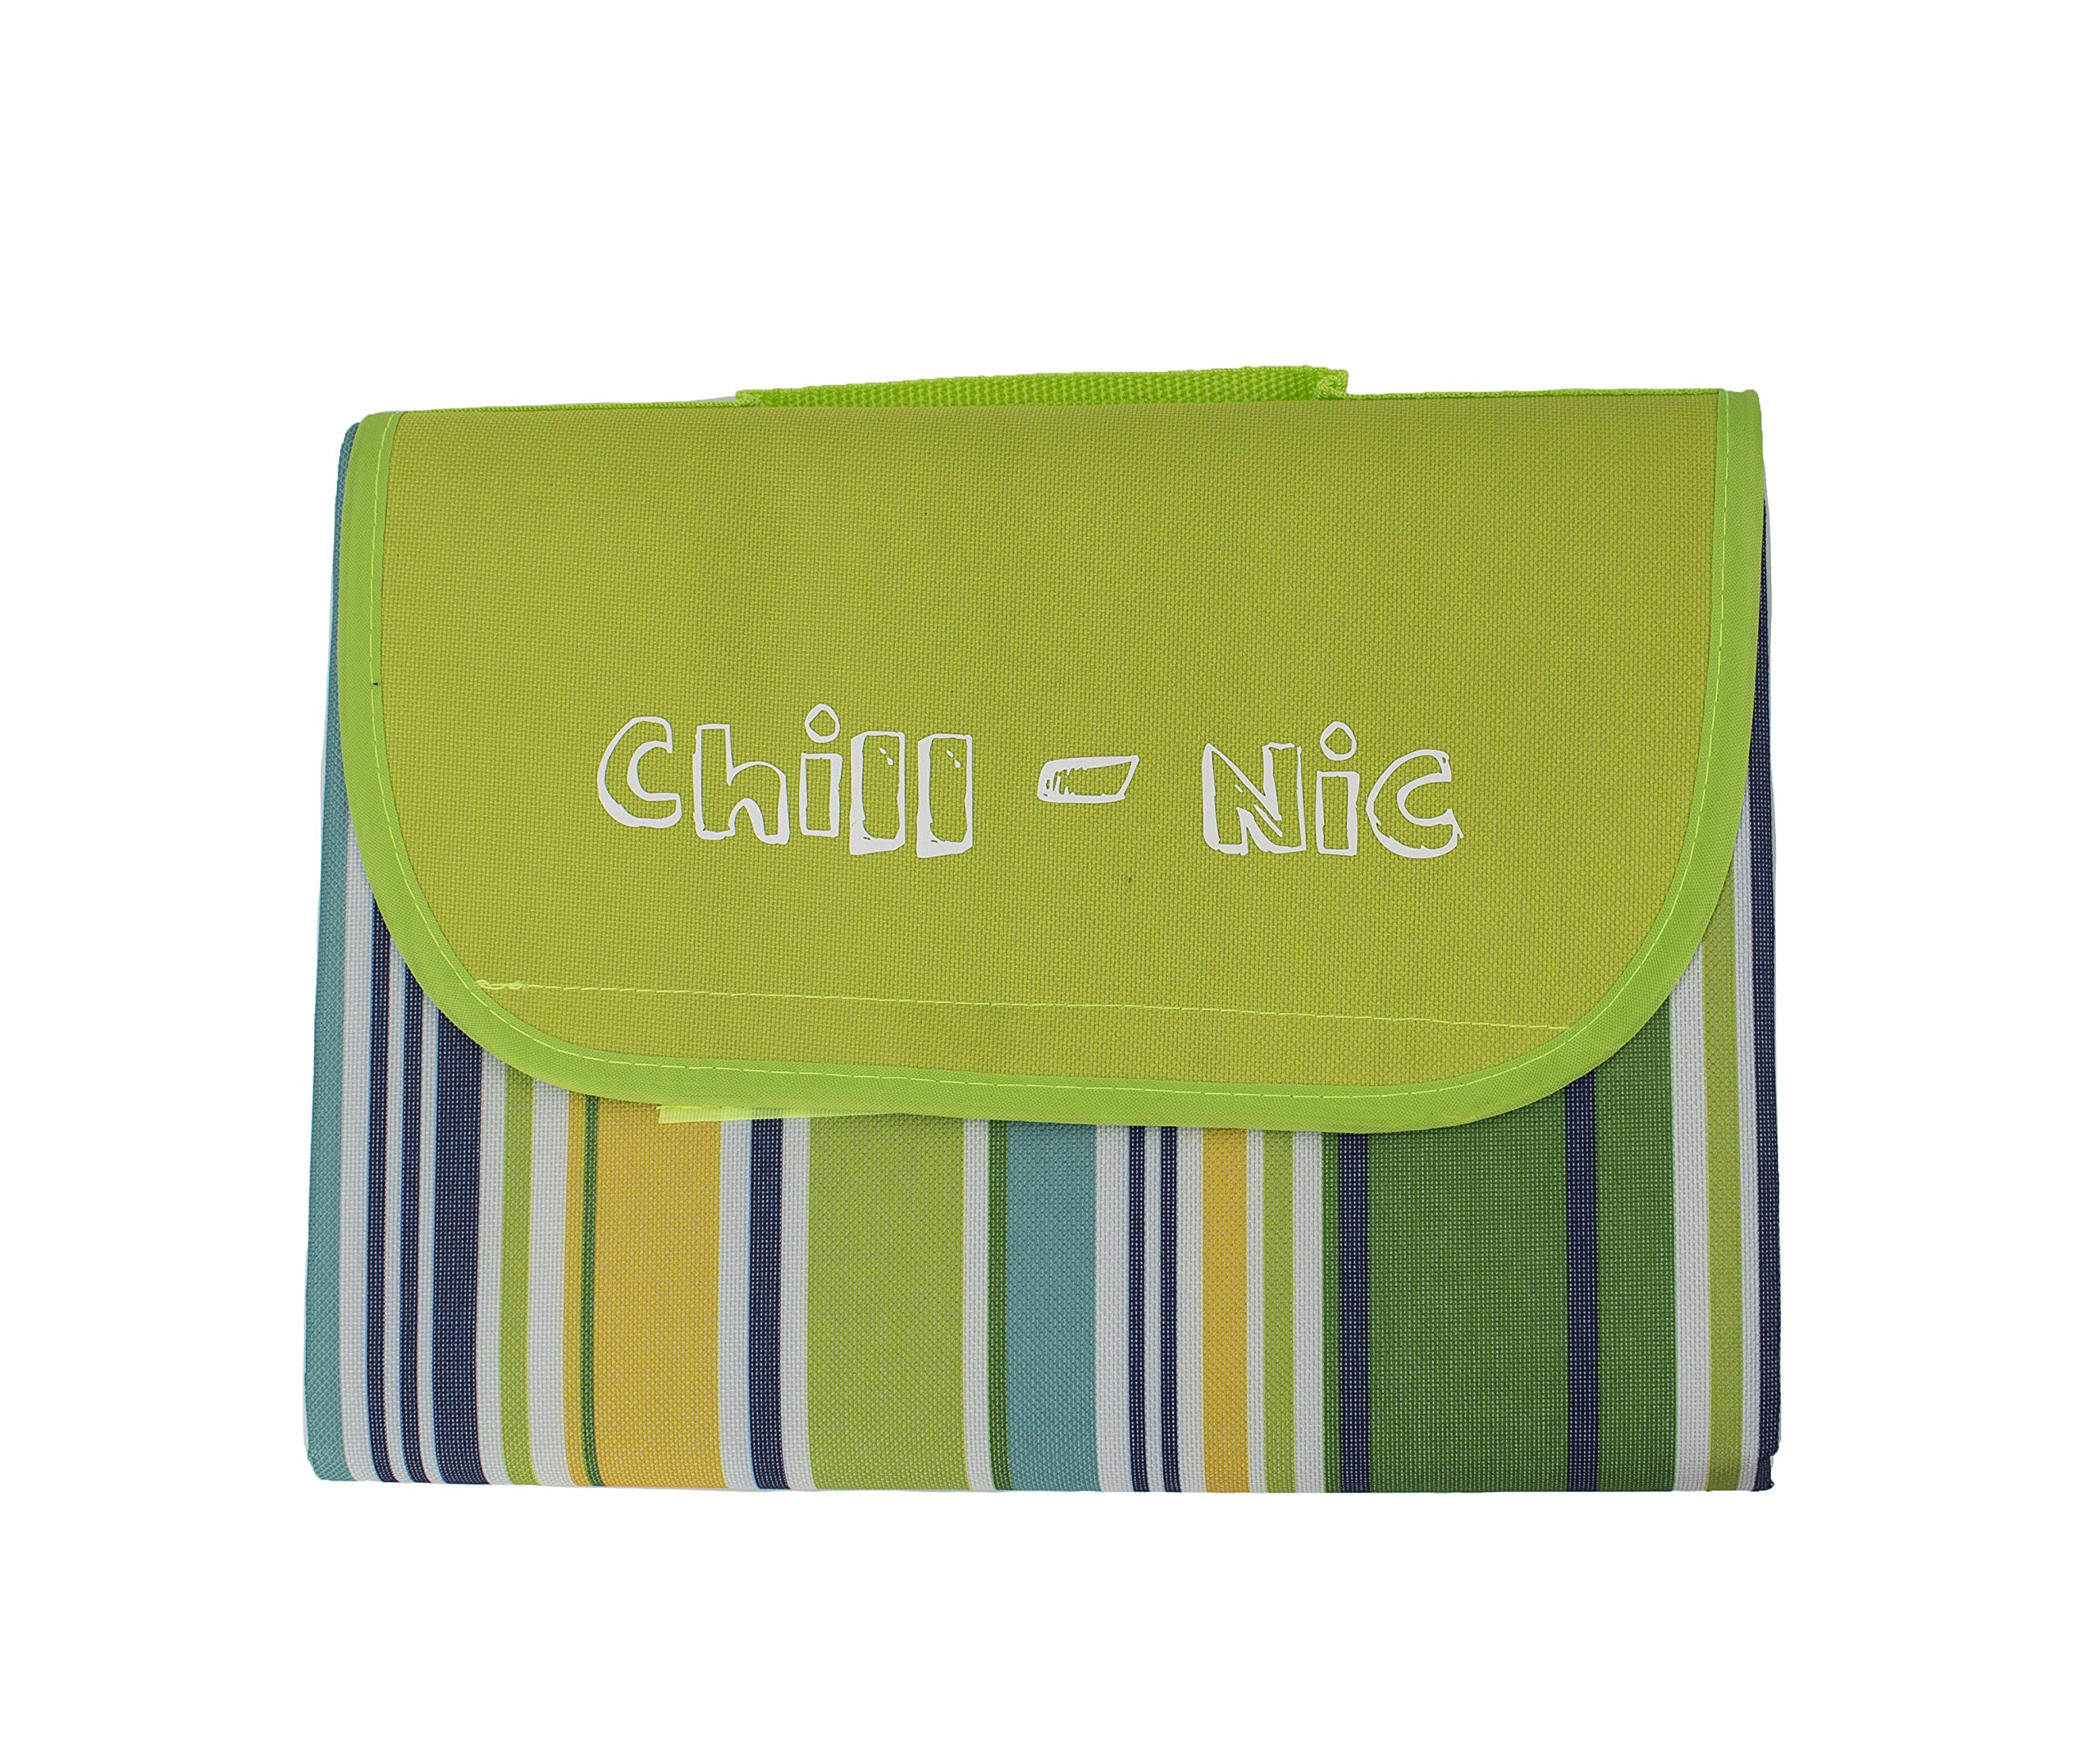 Picnic Mat - Green Edition sand proof water proof